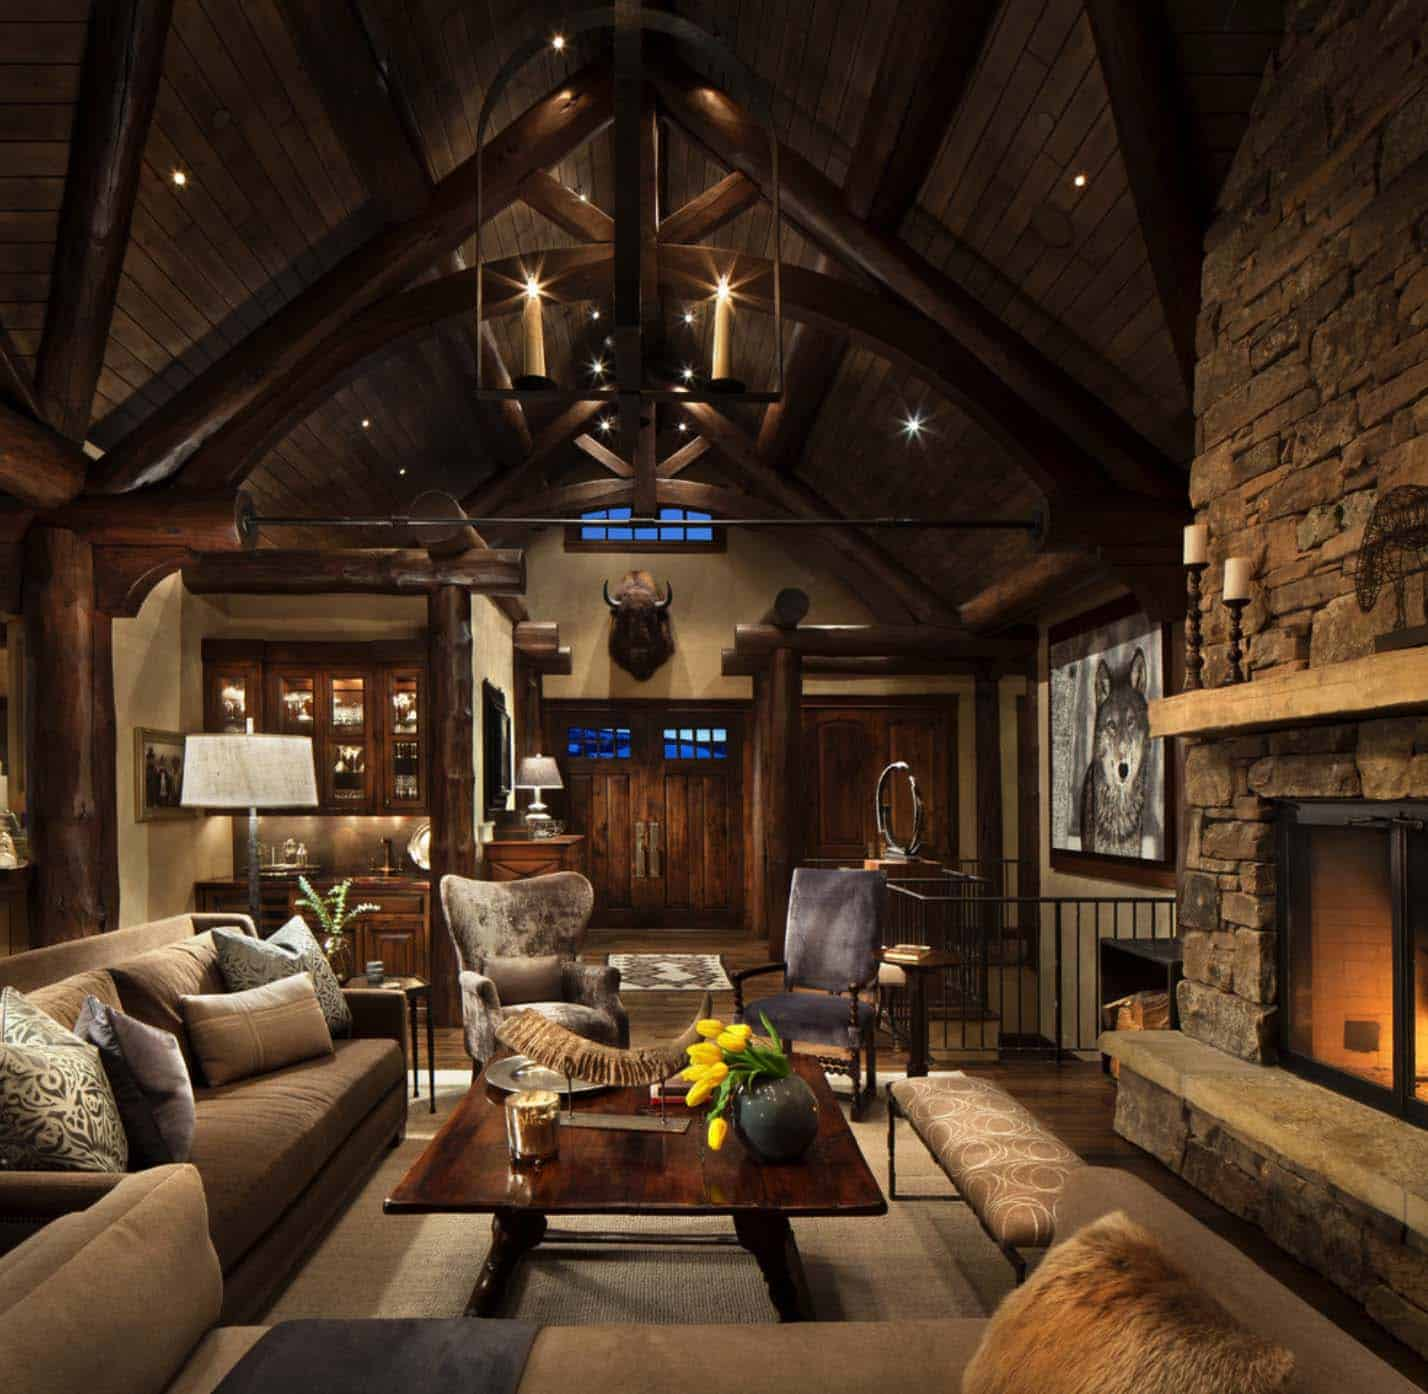 Exquisite mountain home remodel mi rustic with modern in Big Sky on rogers interior design, magnolia interior design, white hall interior design, kalispell interior design, kimberly interior design, bozeman interior design, centerville interior design, eagle interior design, home and garden fireplace design, united states interior design, salem interior design, lewisville interior design, etsu interior design, augusta interior design, california mission style interior design, stanley interior design, general store interior design, ann arbor interior design, valley interior design, architectural rendering interior design,